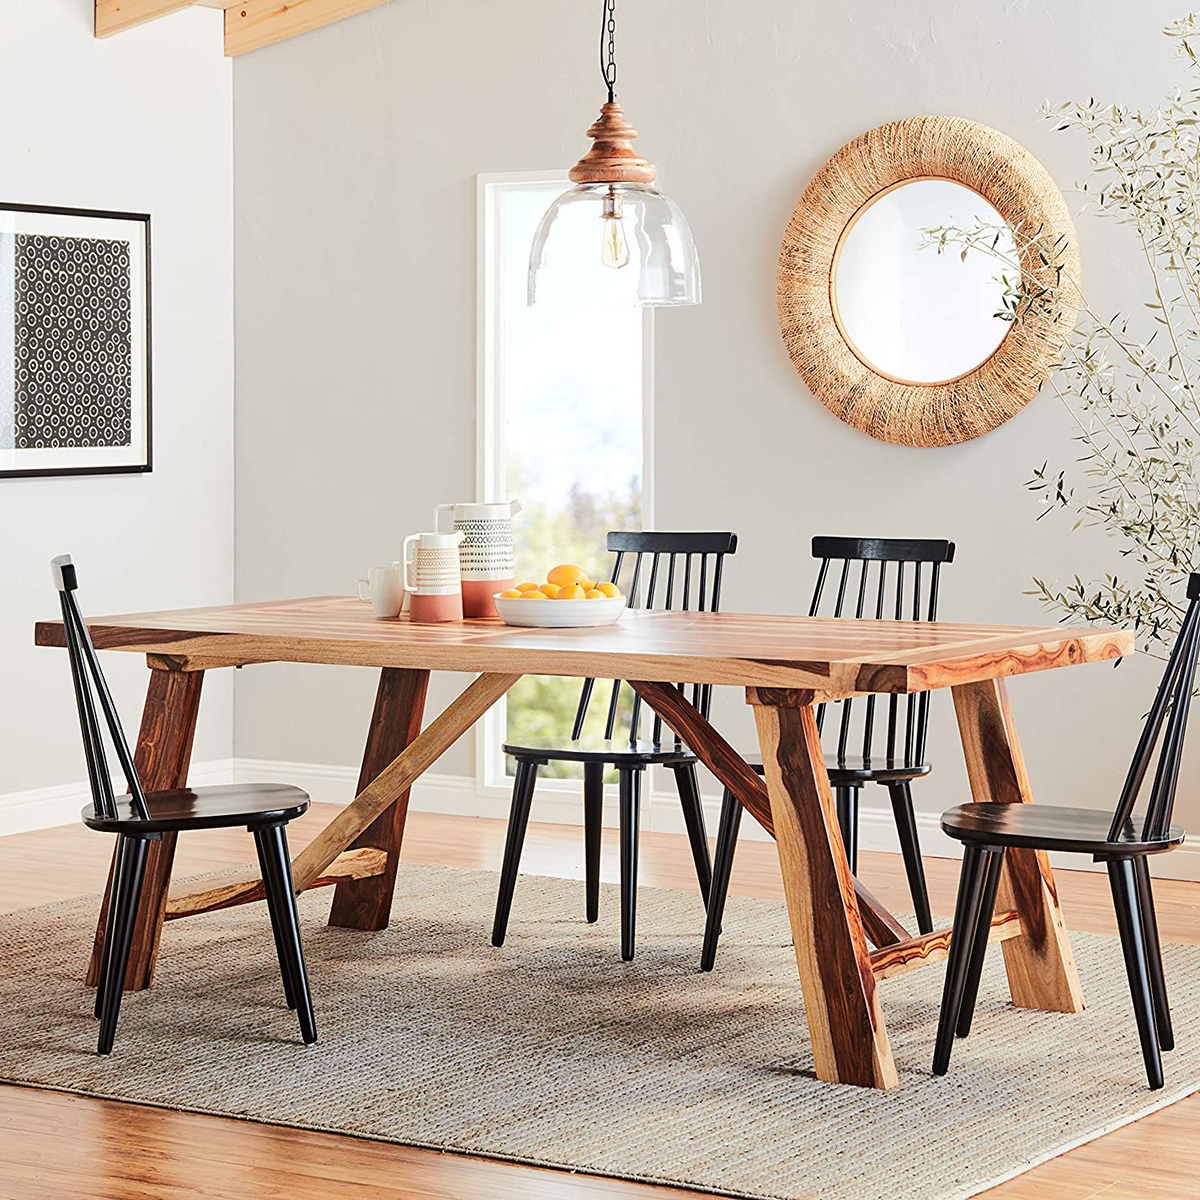 51 Farmhouse Dining Tables That Are Overflowing With Rustic Charm